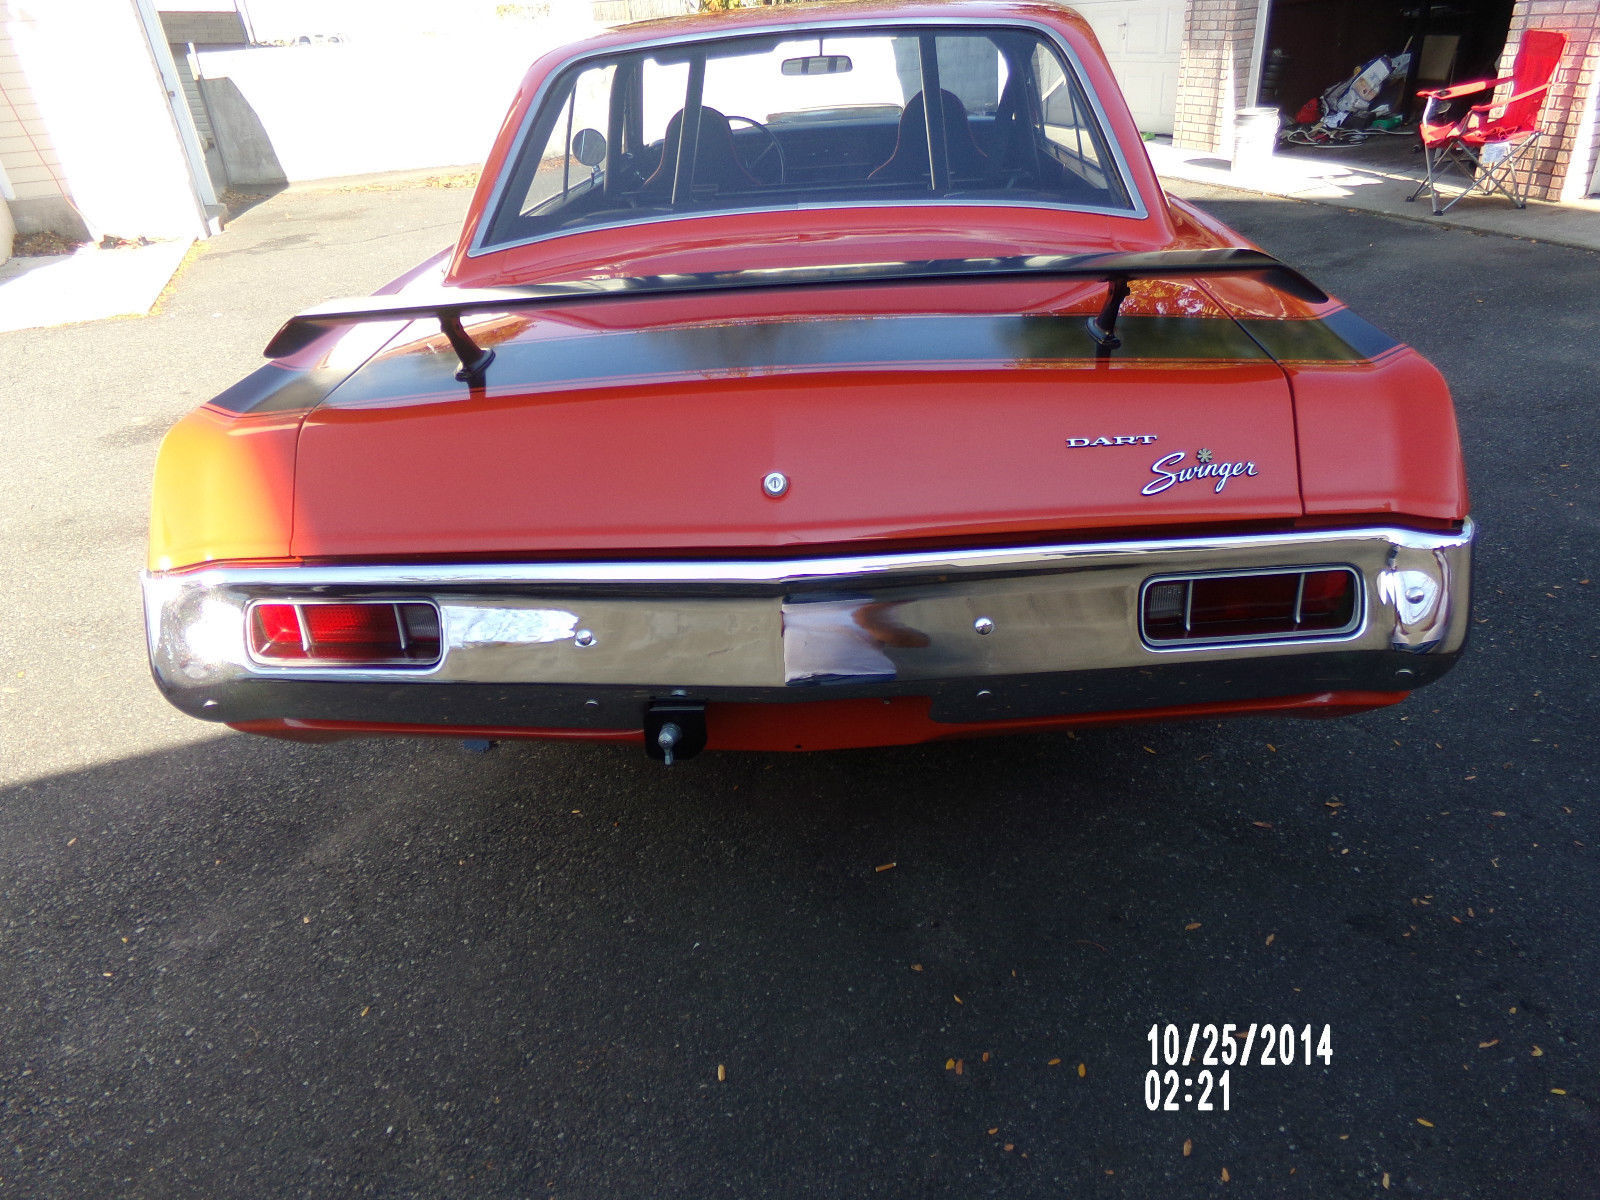 1970 dodge dart swinger 340 pro street h code original 340 motor with. Cars Review. Best American Auto & Cars Review